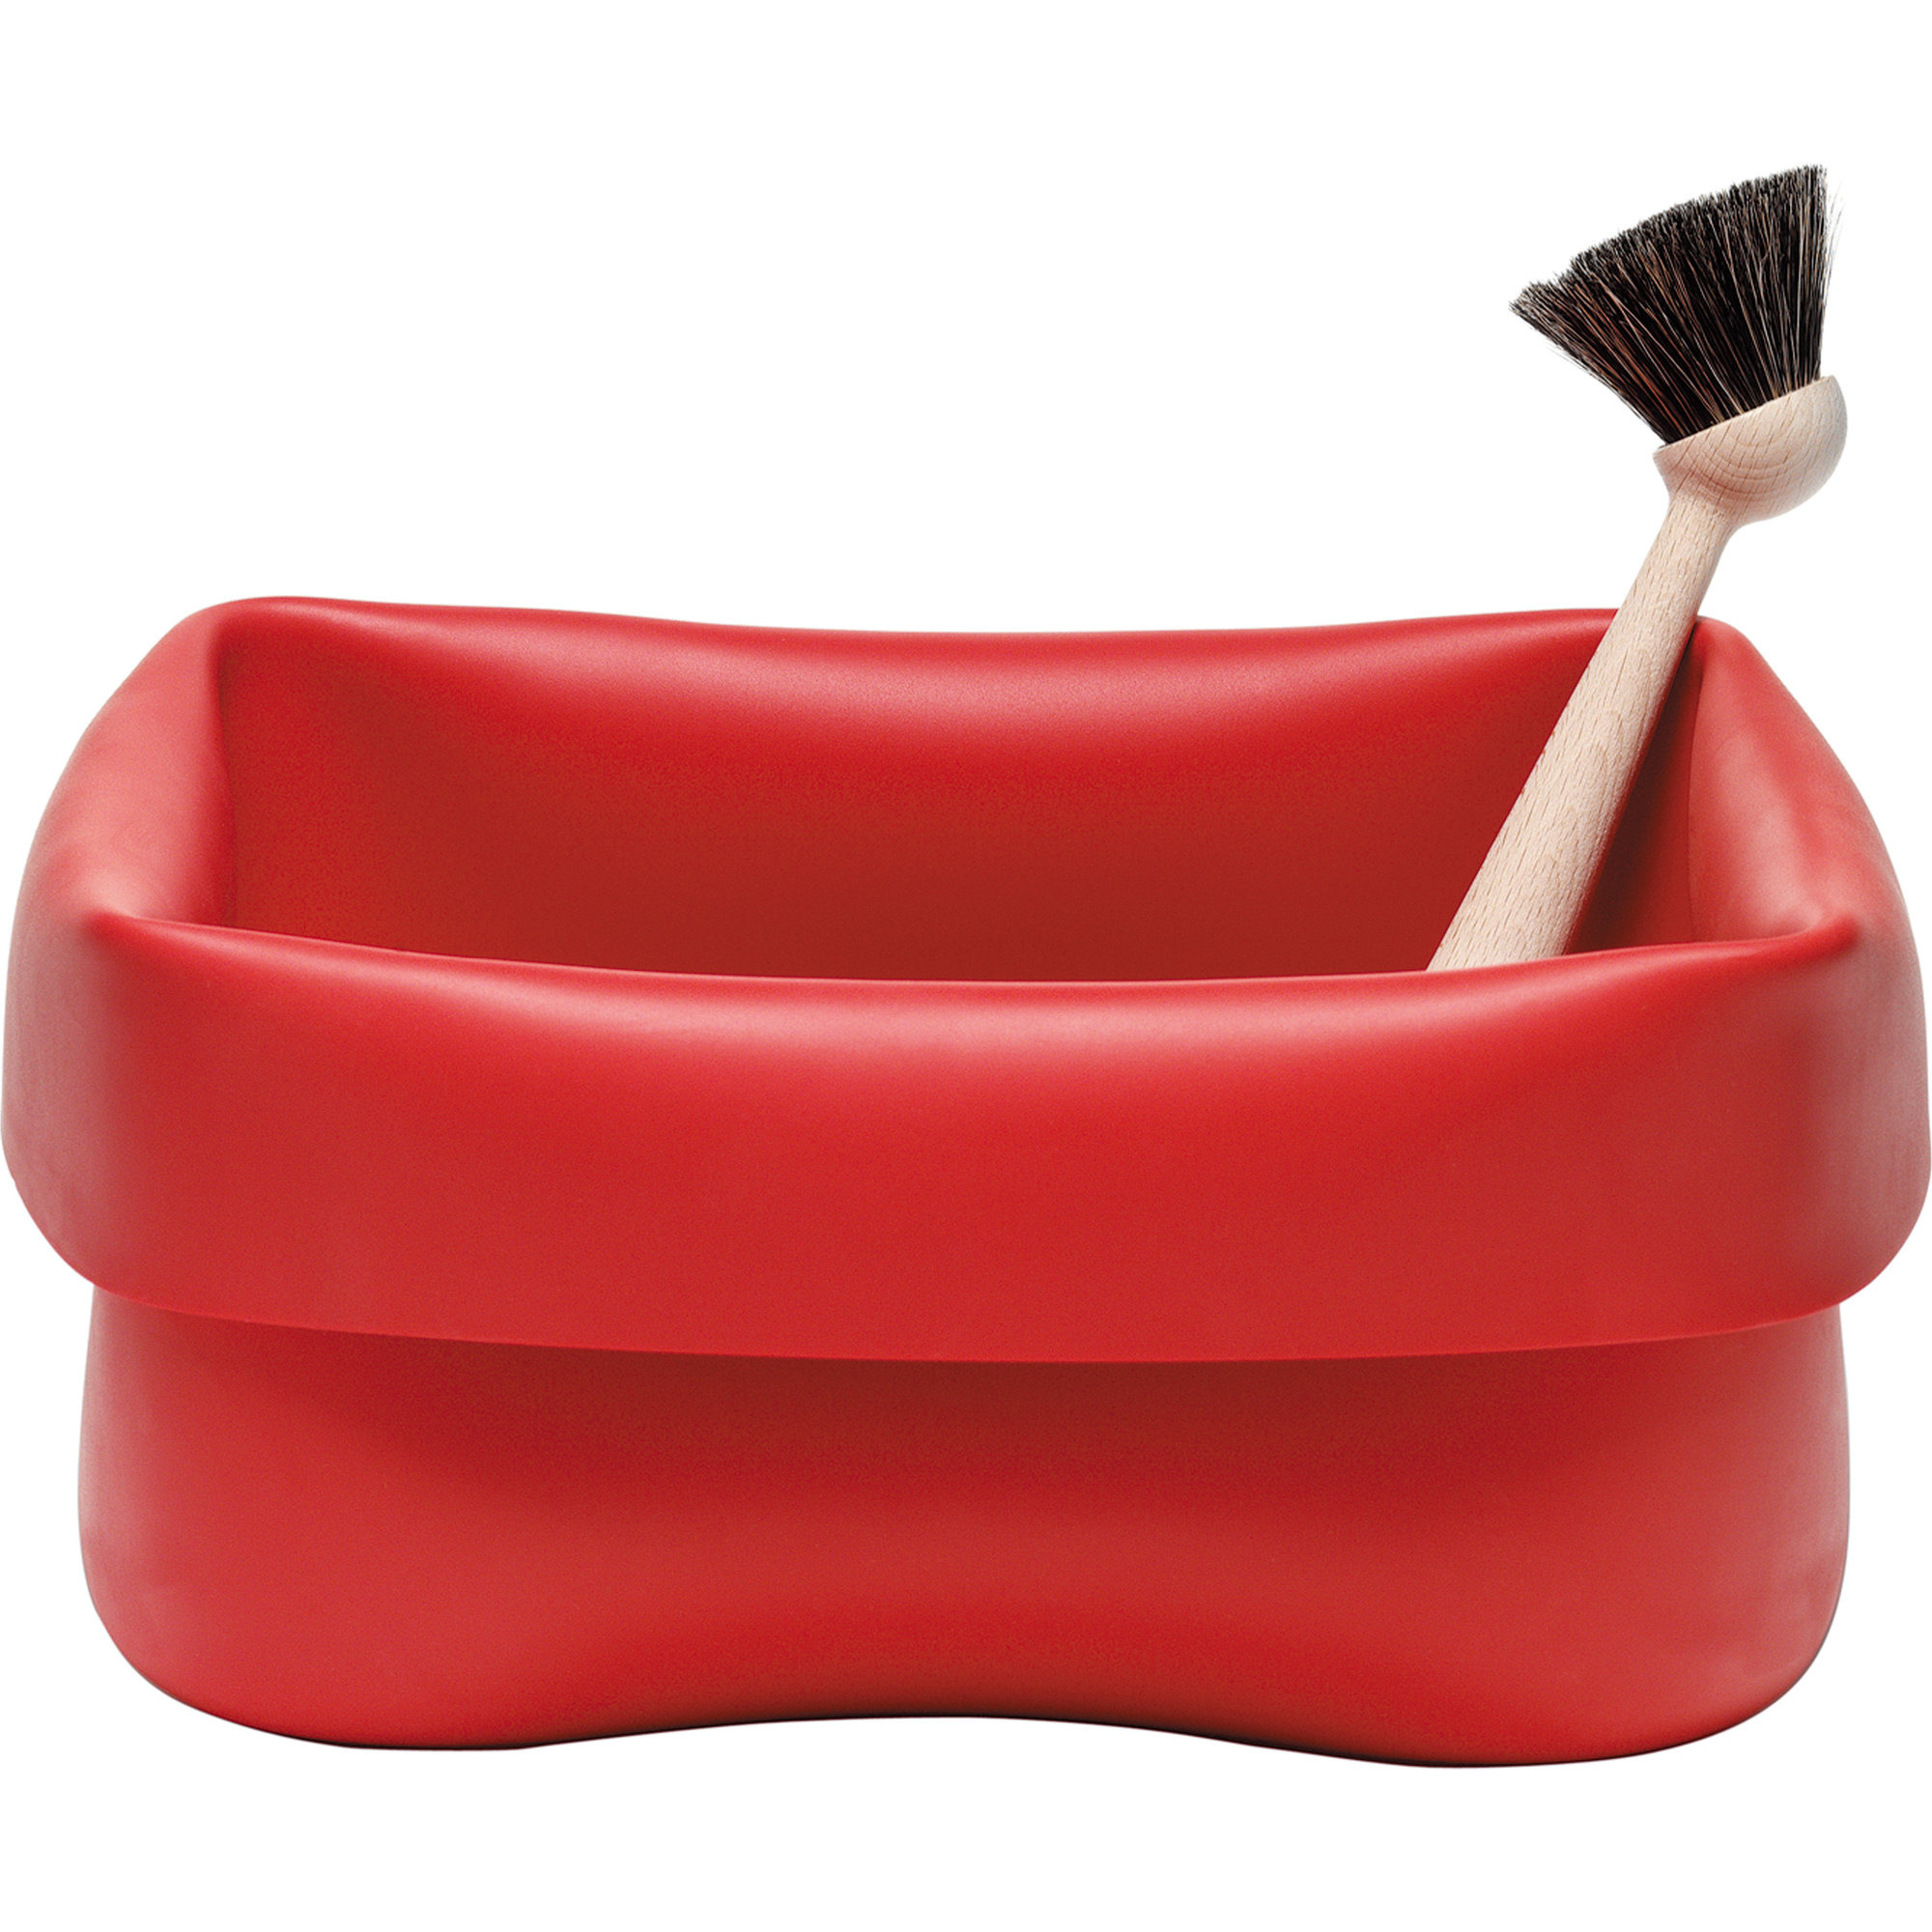 Normann Copenhagen Washing-up Bowl & Brush Red